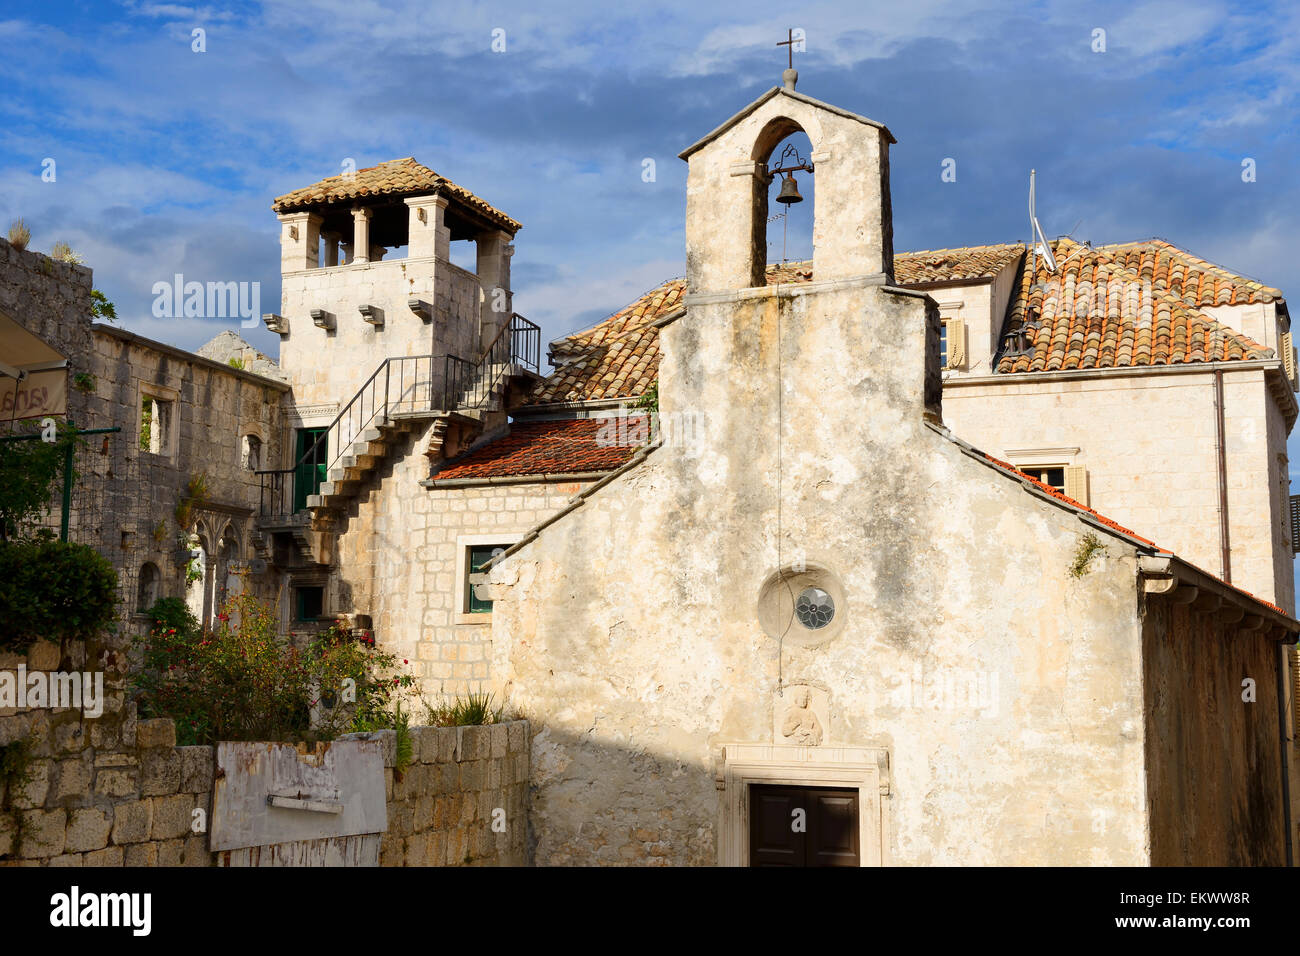 Church of All Saints and Marco Polo Tower in old town of Korcula on Dalmatian Coast of Croatia - Stock Image